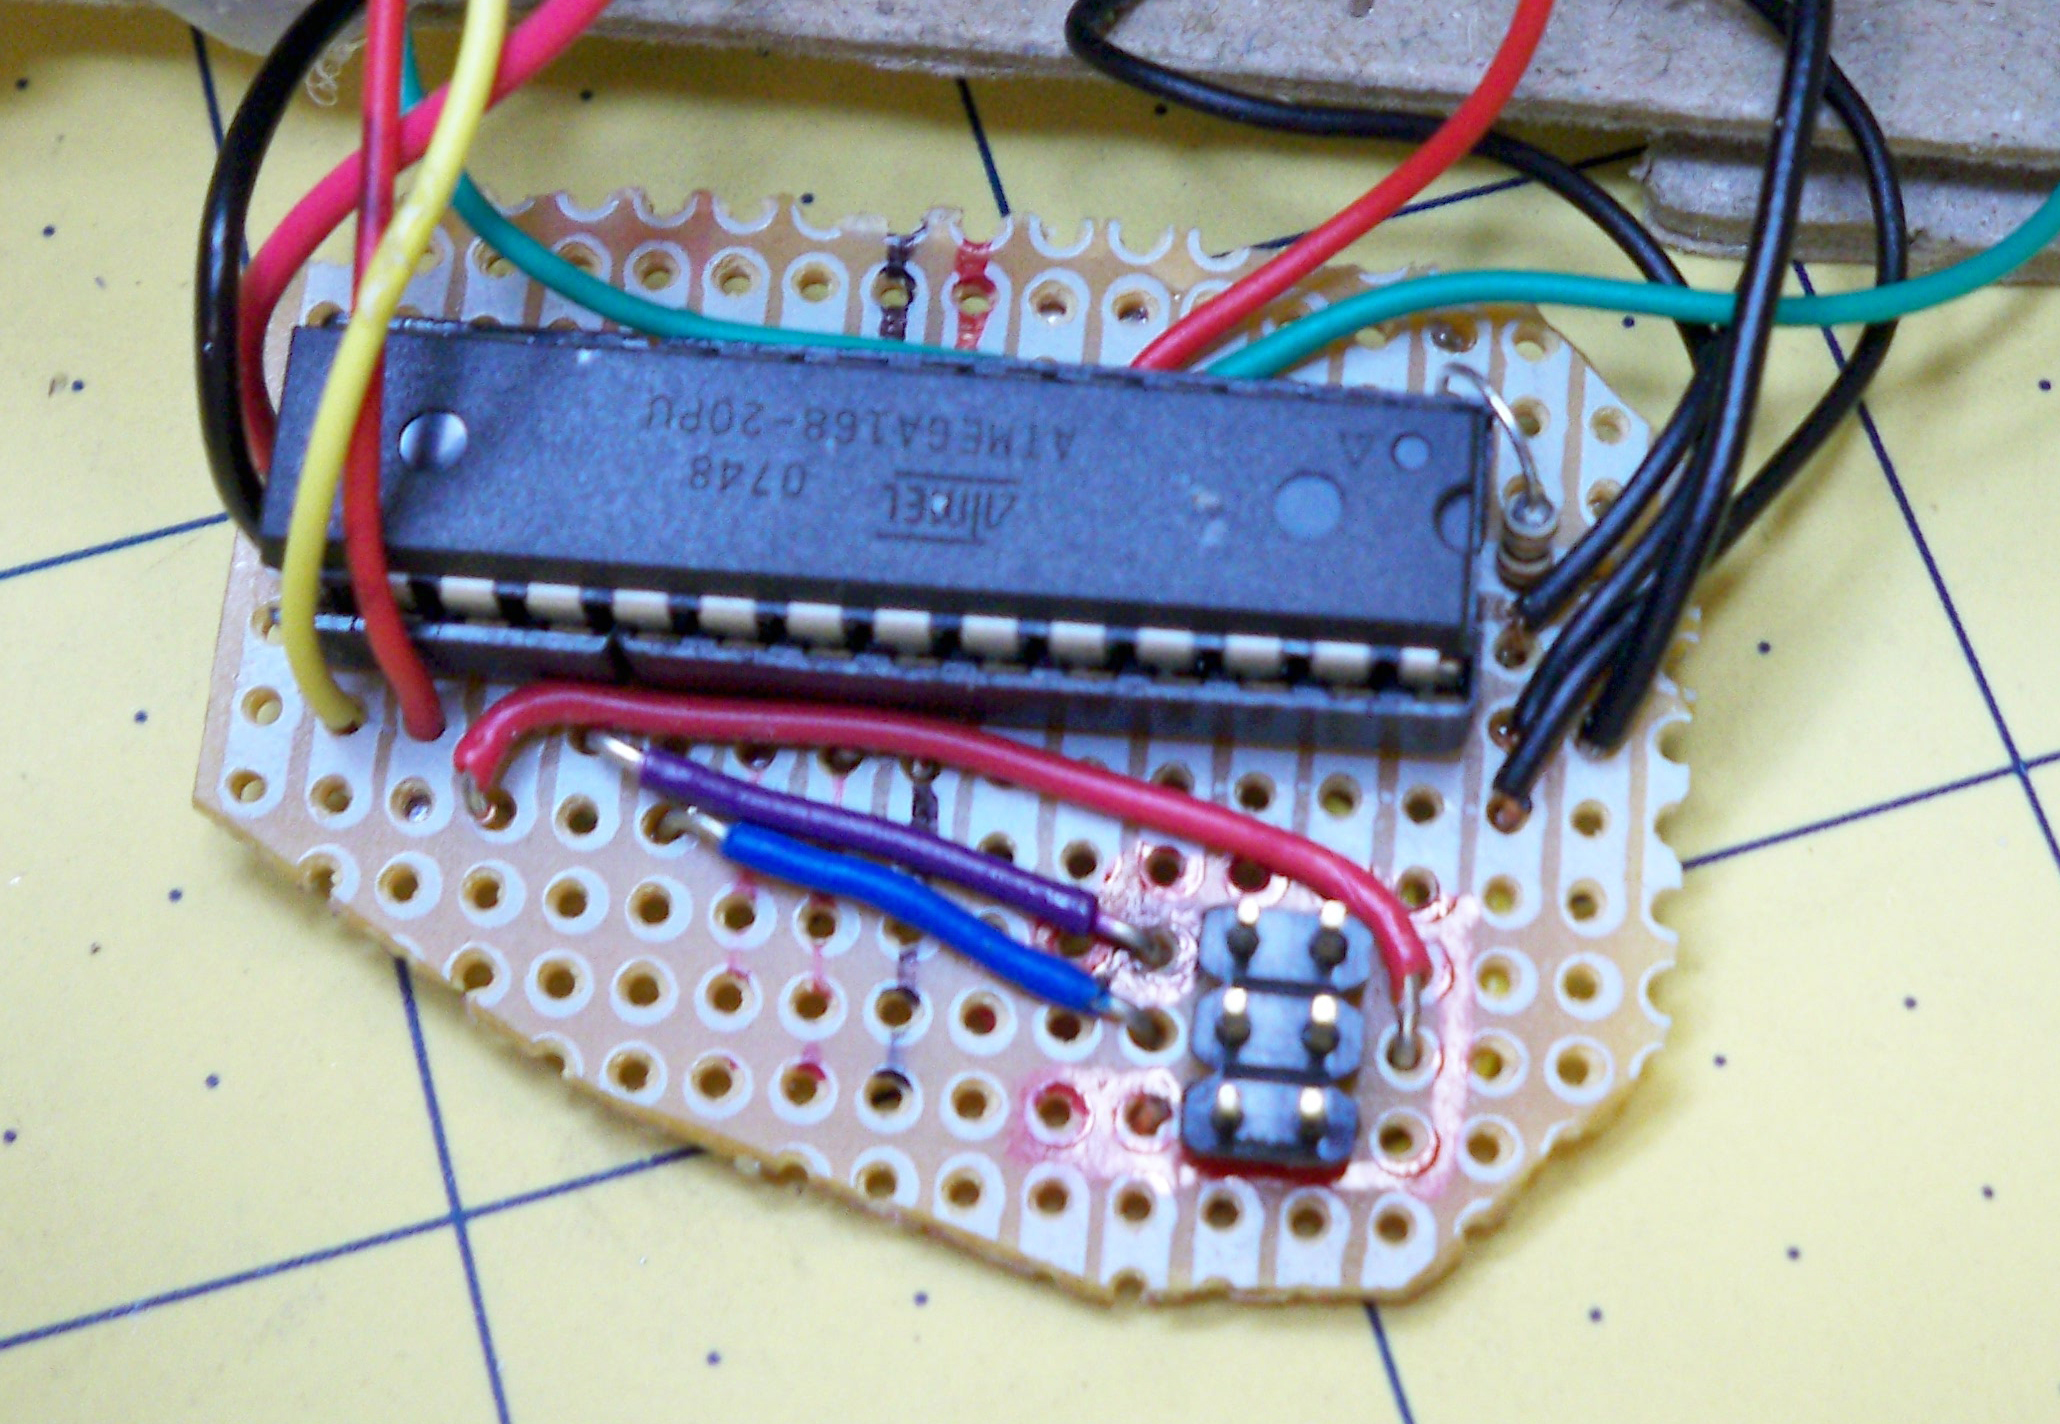 Blog Archive Make A Custom Minimal Arduino Board And Build Your Own Circuit On Breadboard Im